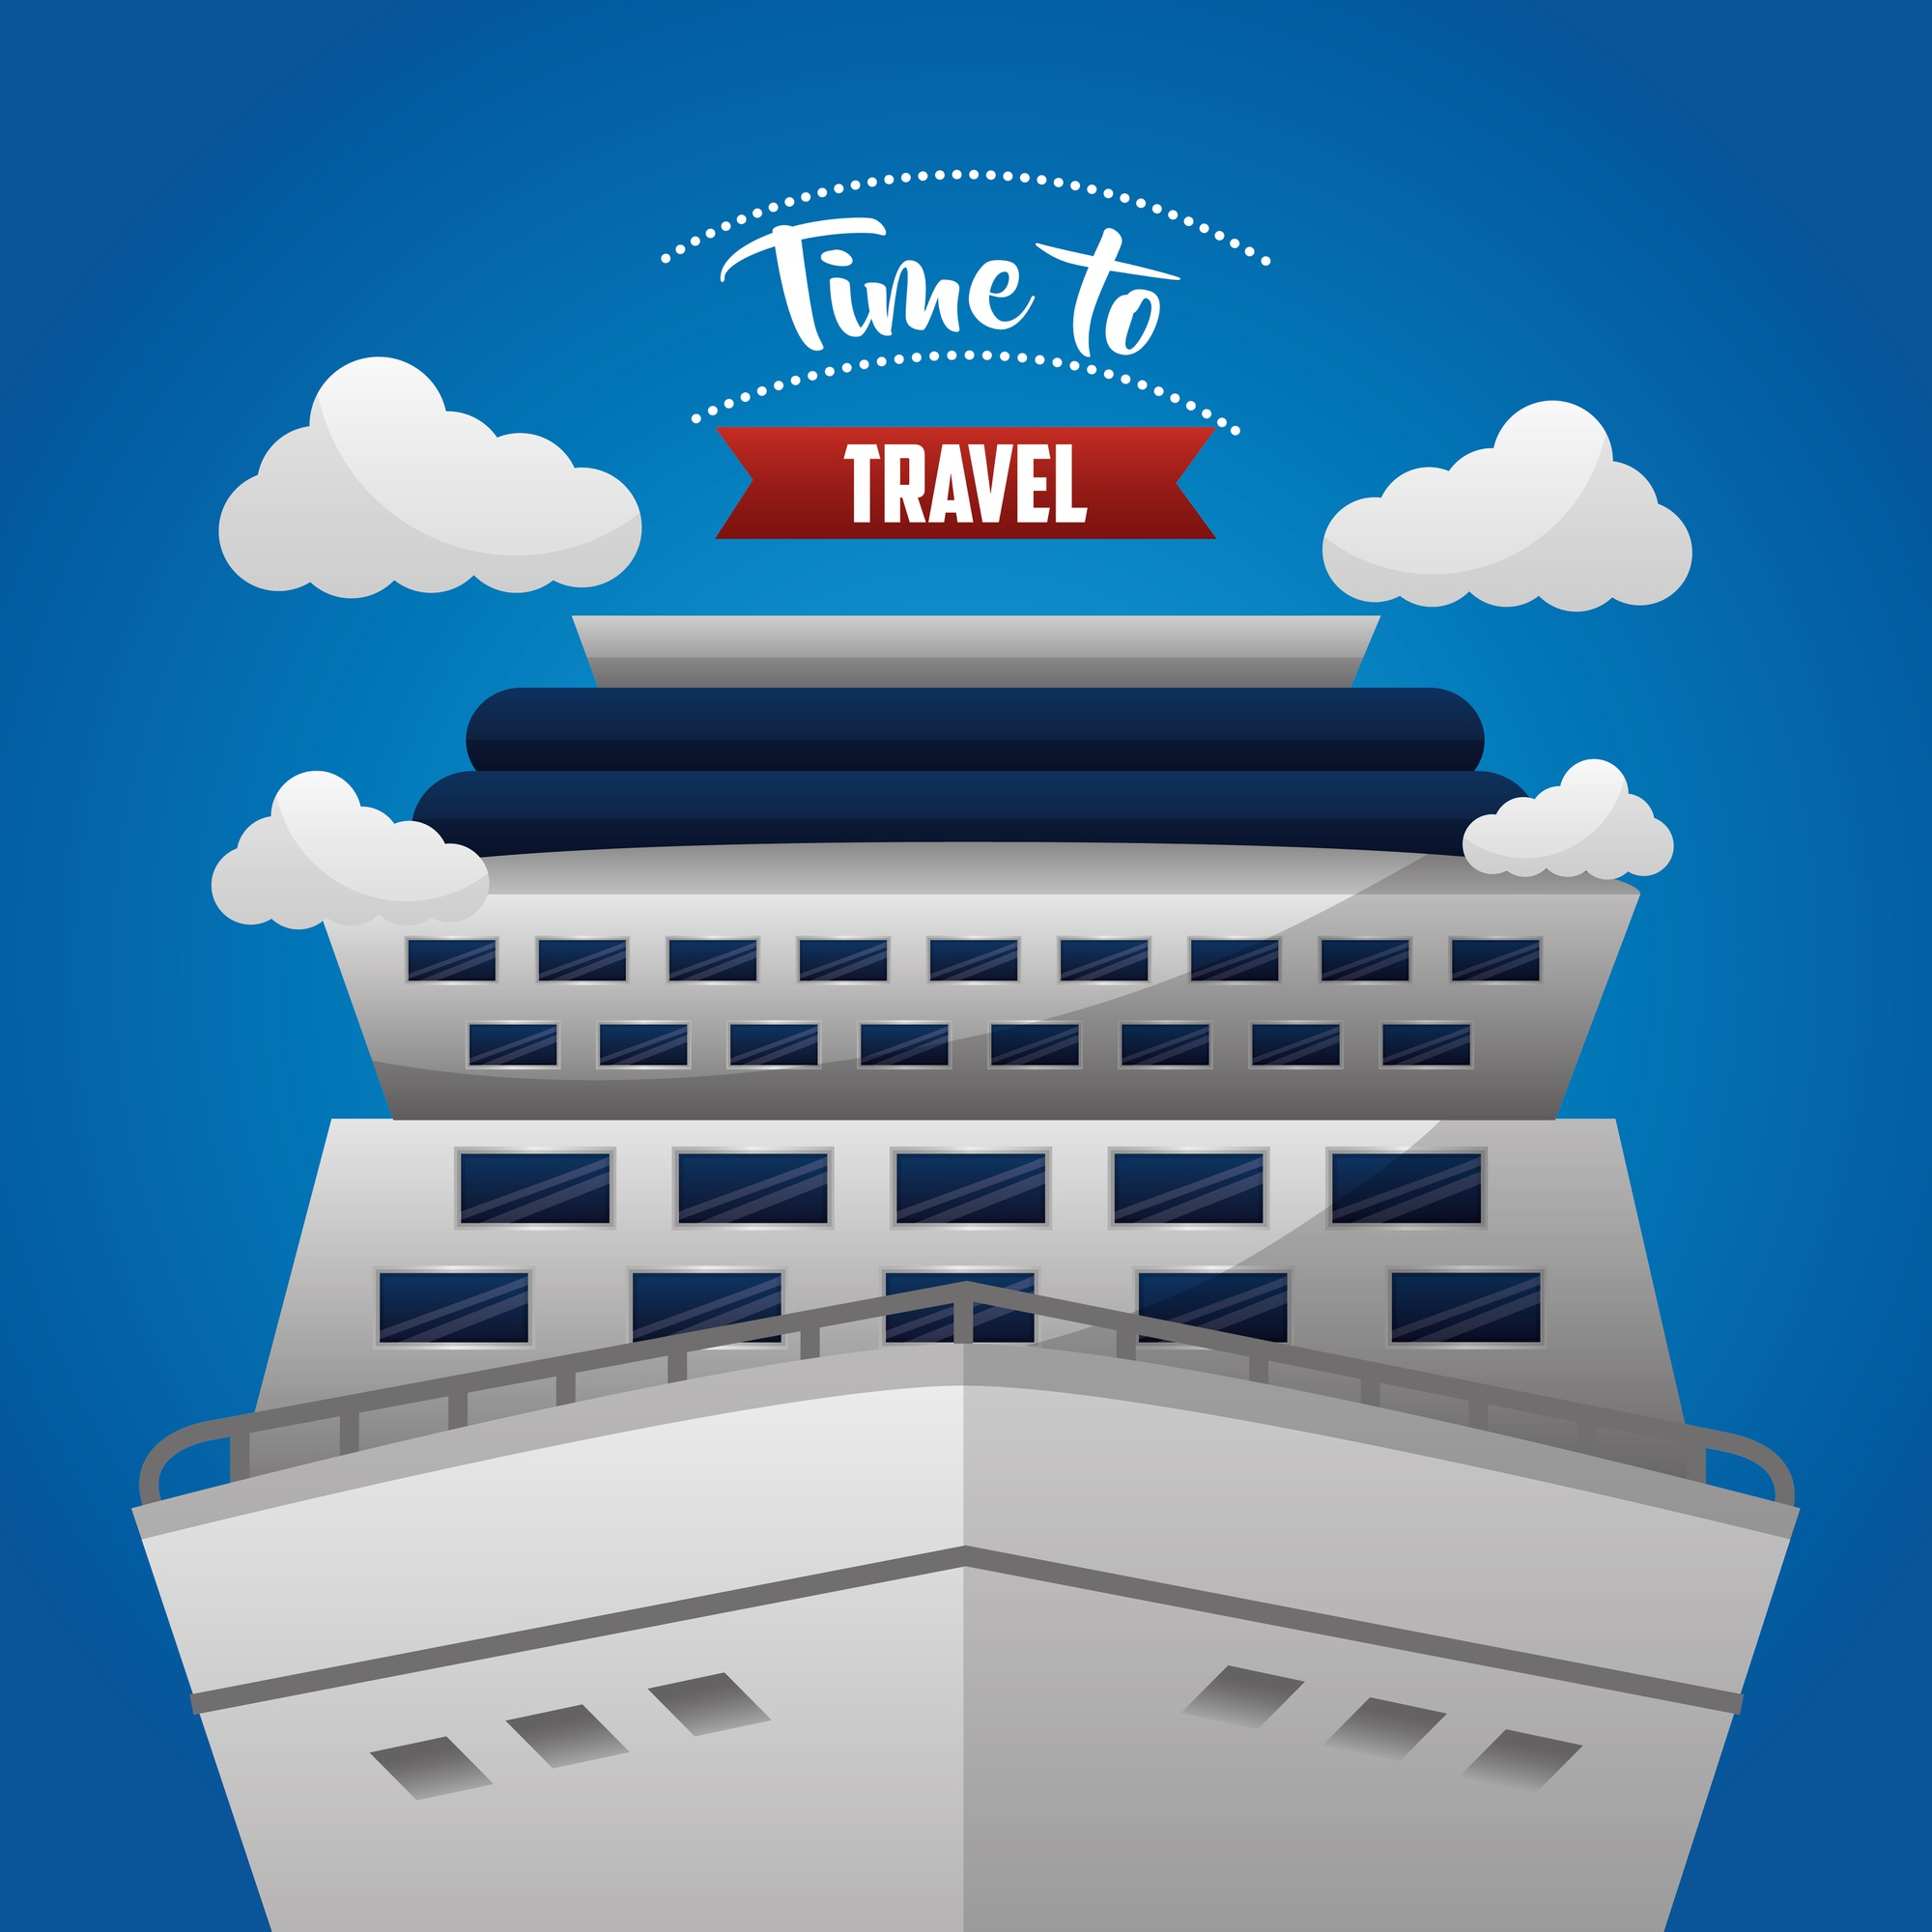 Time to travel sky clouds cruise trip sea